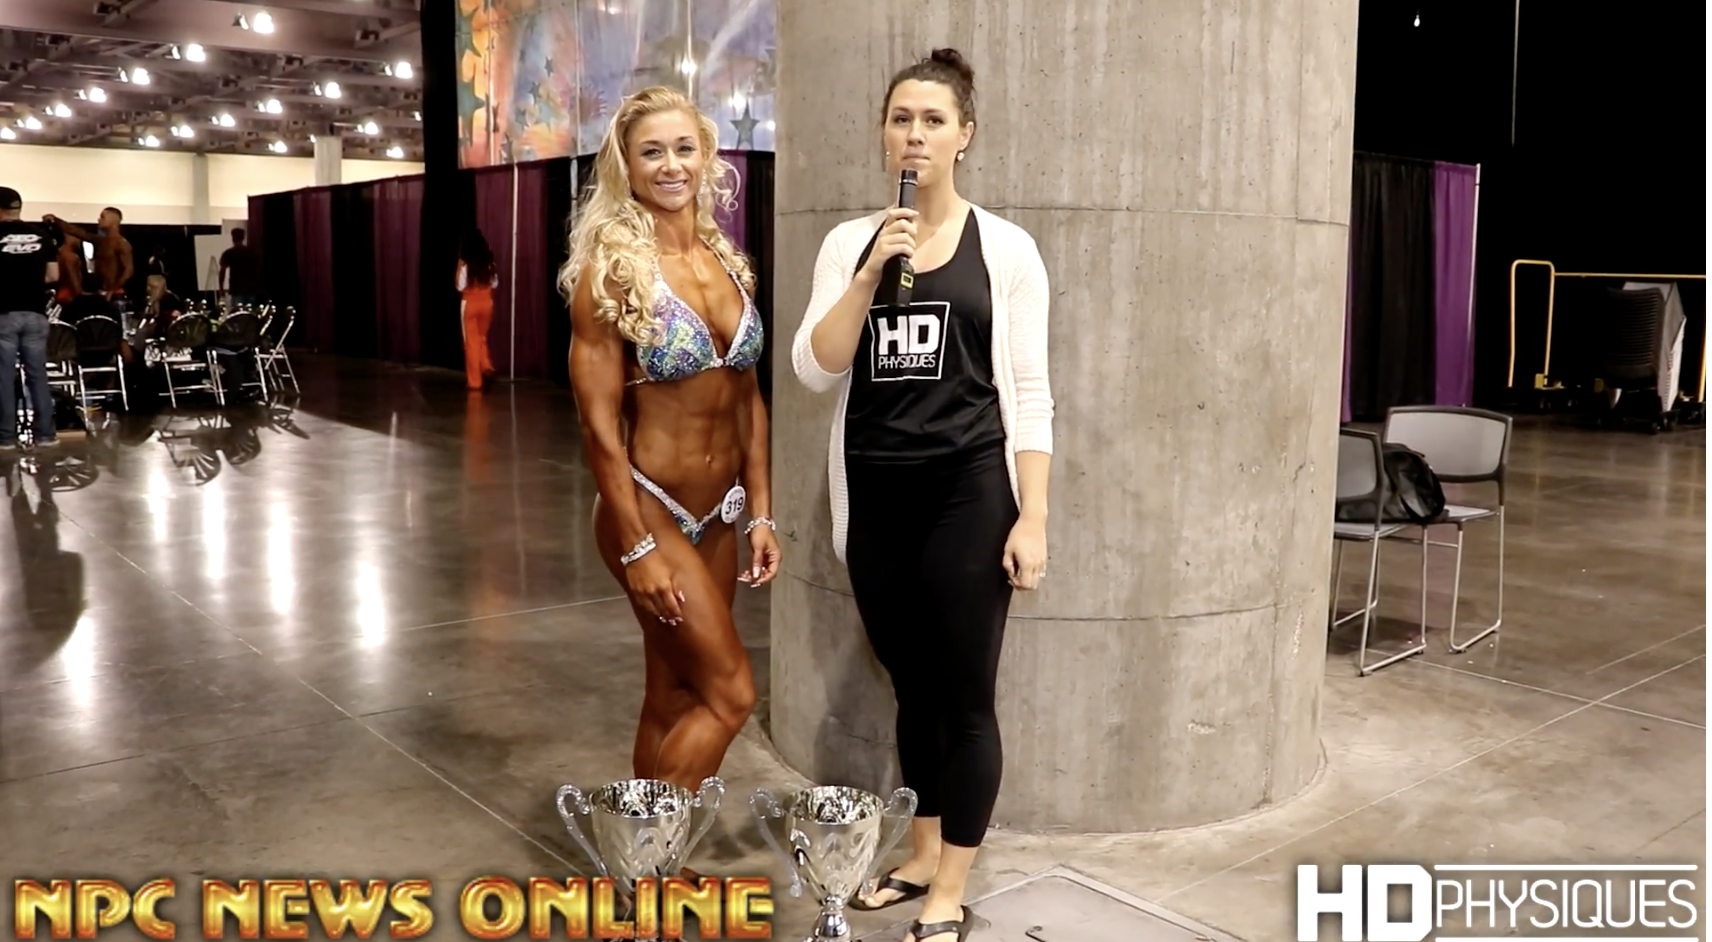 2017 NPC  Phoenix Europa  Women's Physique Overall Winner Tiffany Boyle Interview